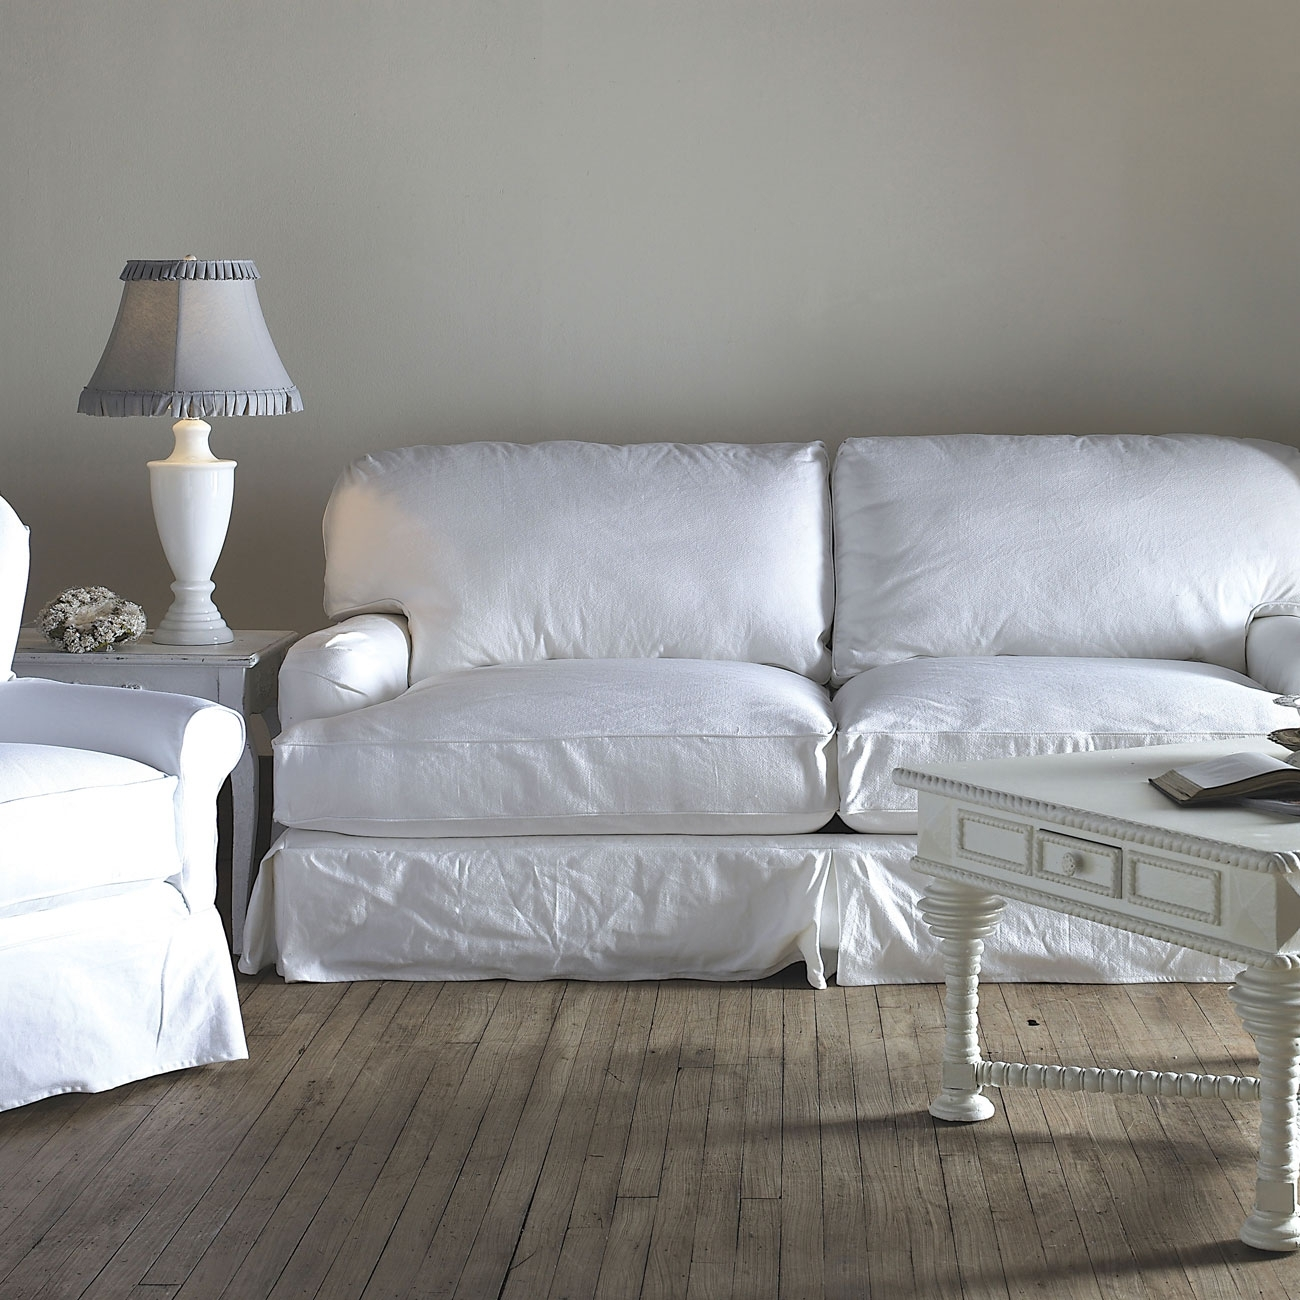 25 Cozy Shabby Chic Furniture Ideas For Your Home | Top Home Designs With Regard To Shabby Chic Sofas (Image 1 of 10)